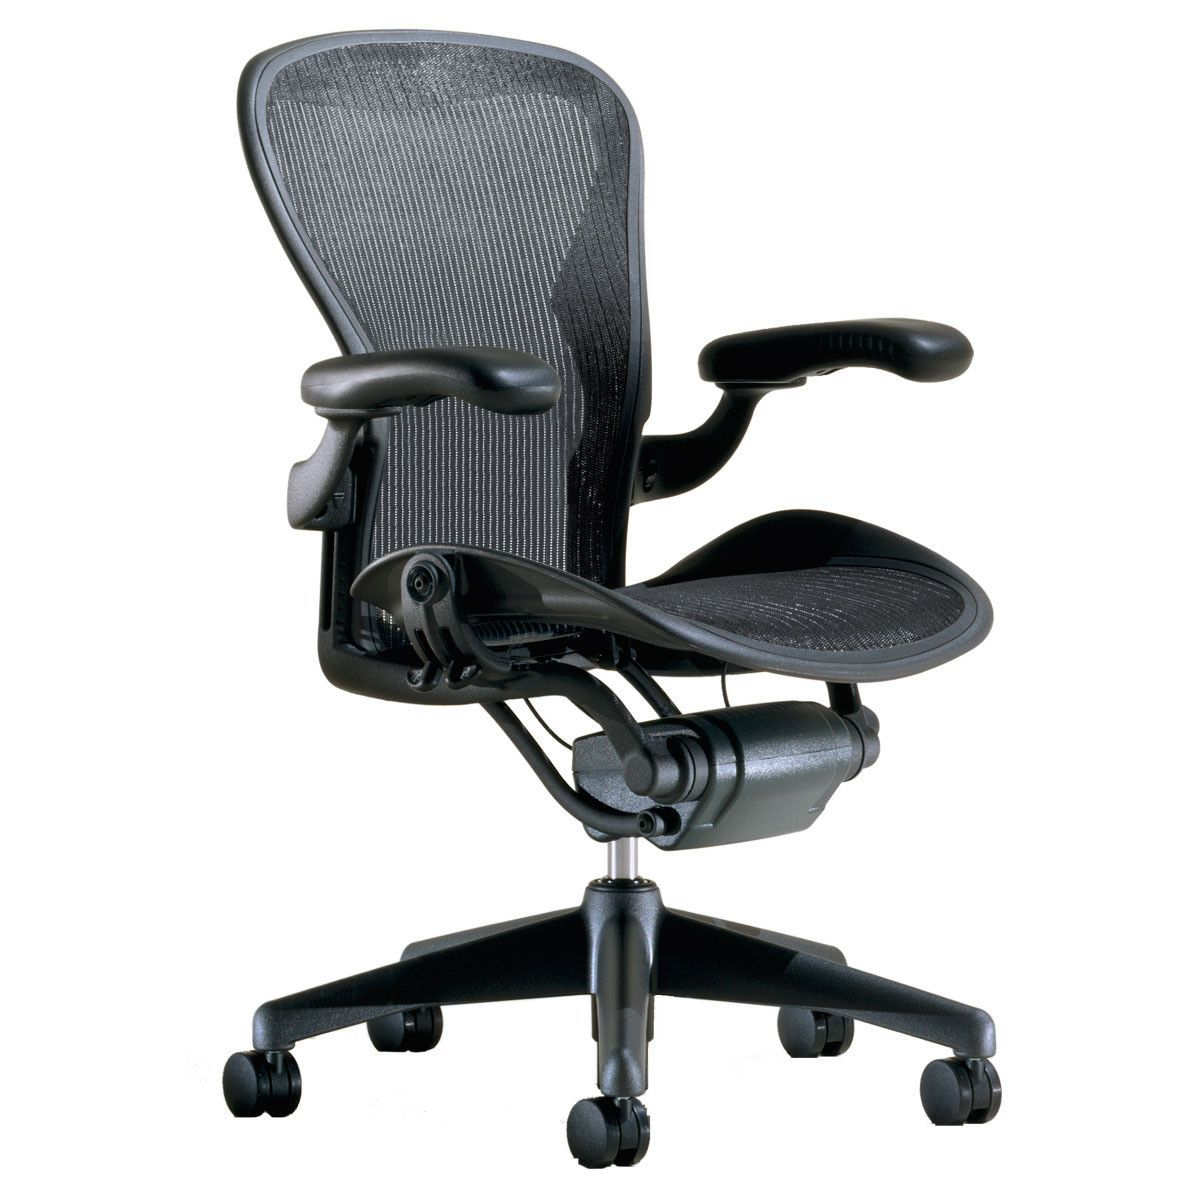 Ergonomic Office Stool Chair   Home Office Furniture Desk Check More At  Http://